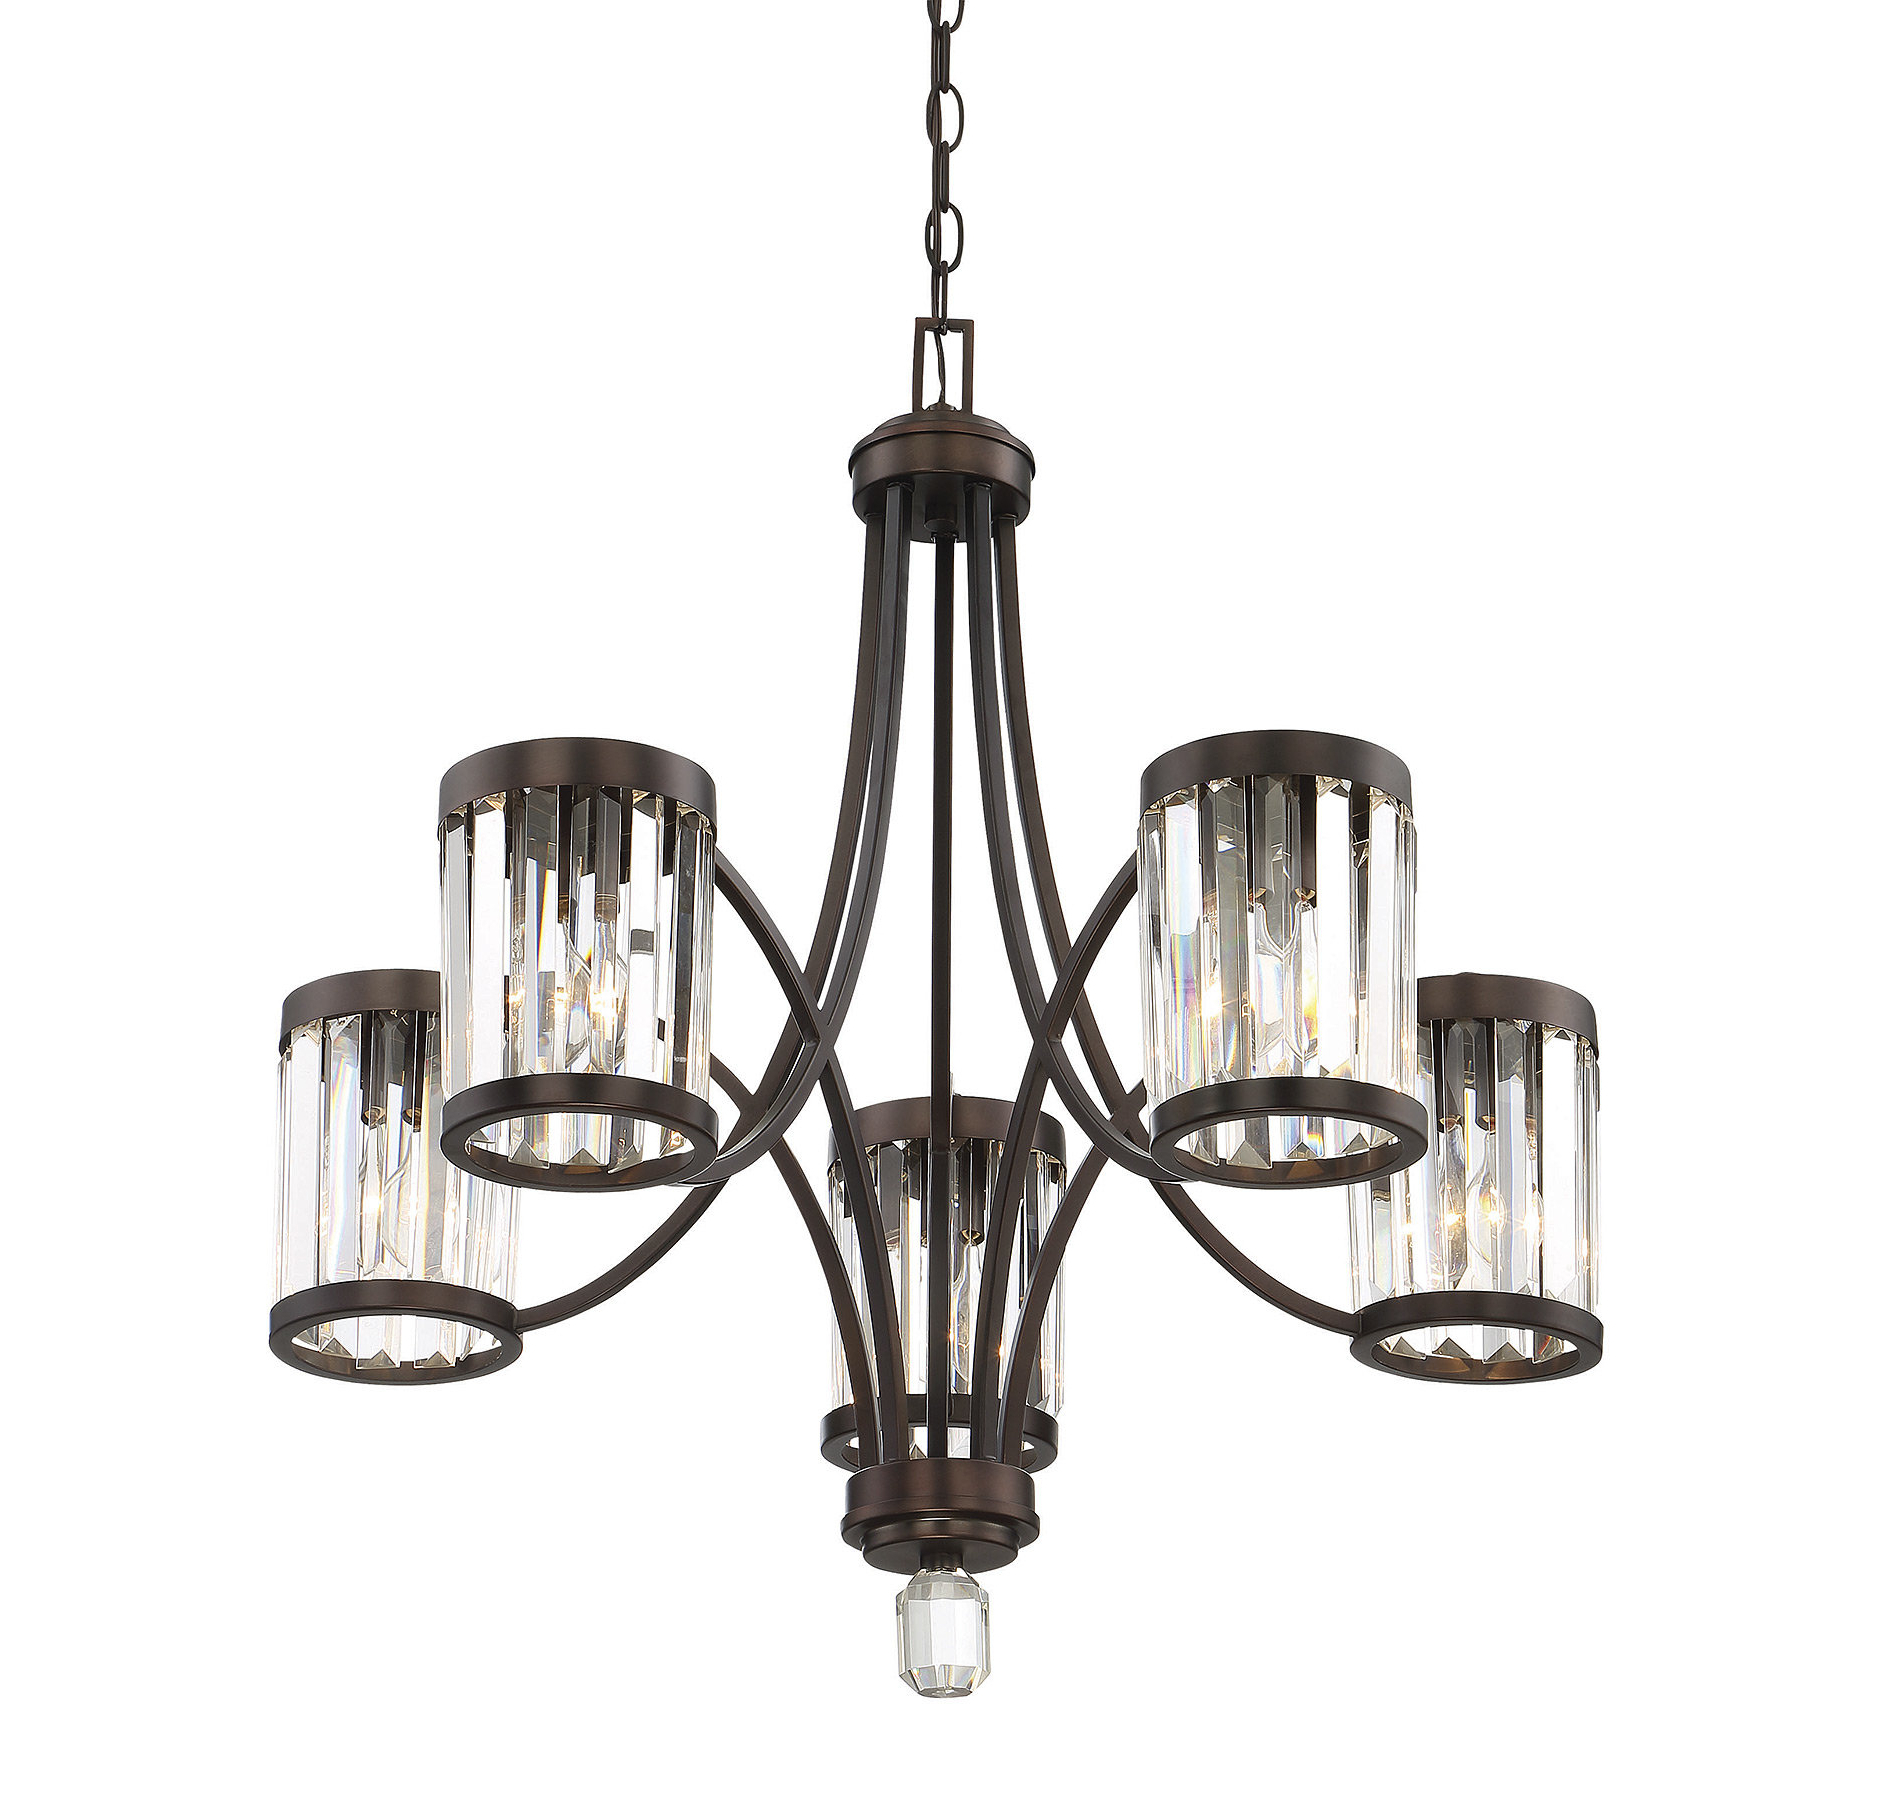 Kenna 5 Light Empire Chandeliers With Regard To Recent Caesar 5 Light Shaded Chandelier (Gallery 16 of 25)